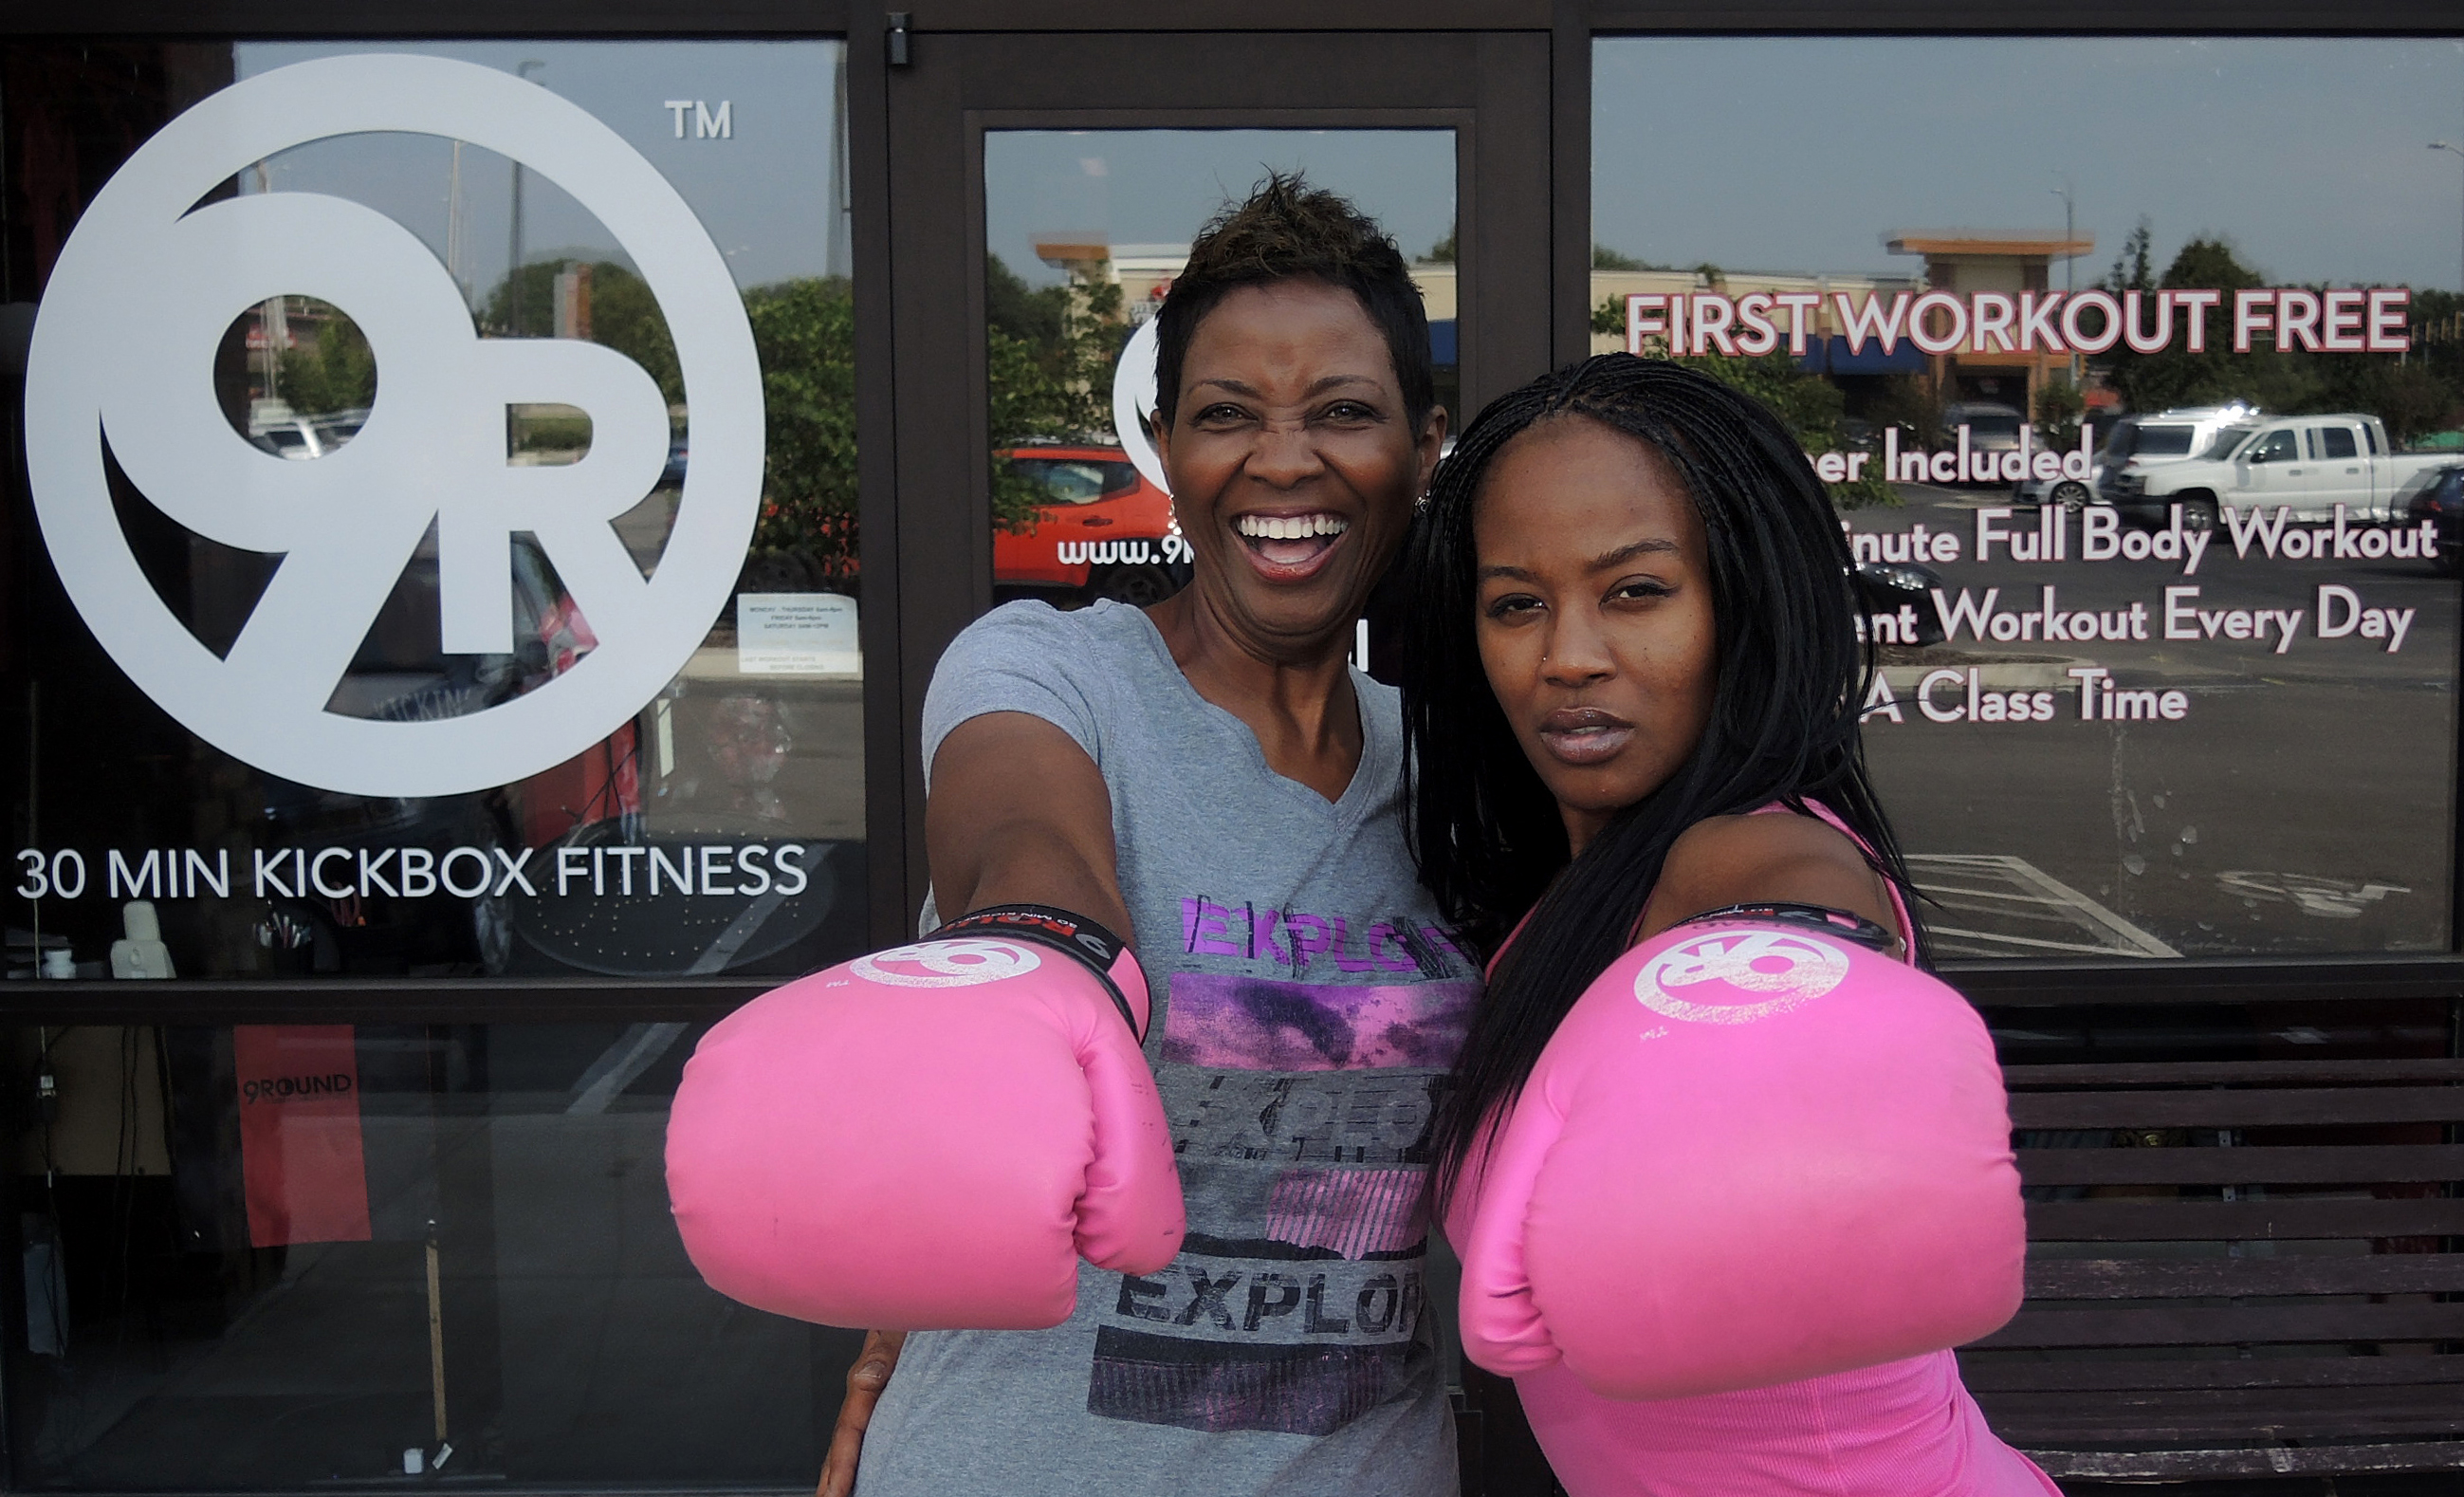 Jewels Of The City – 9 Round 30 Minute Kickbox Fitness